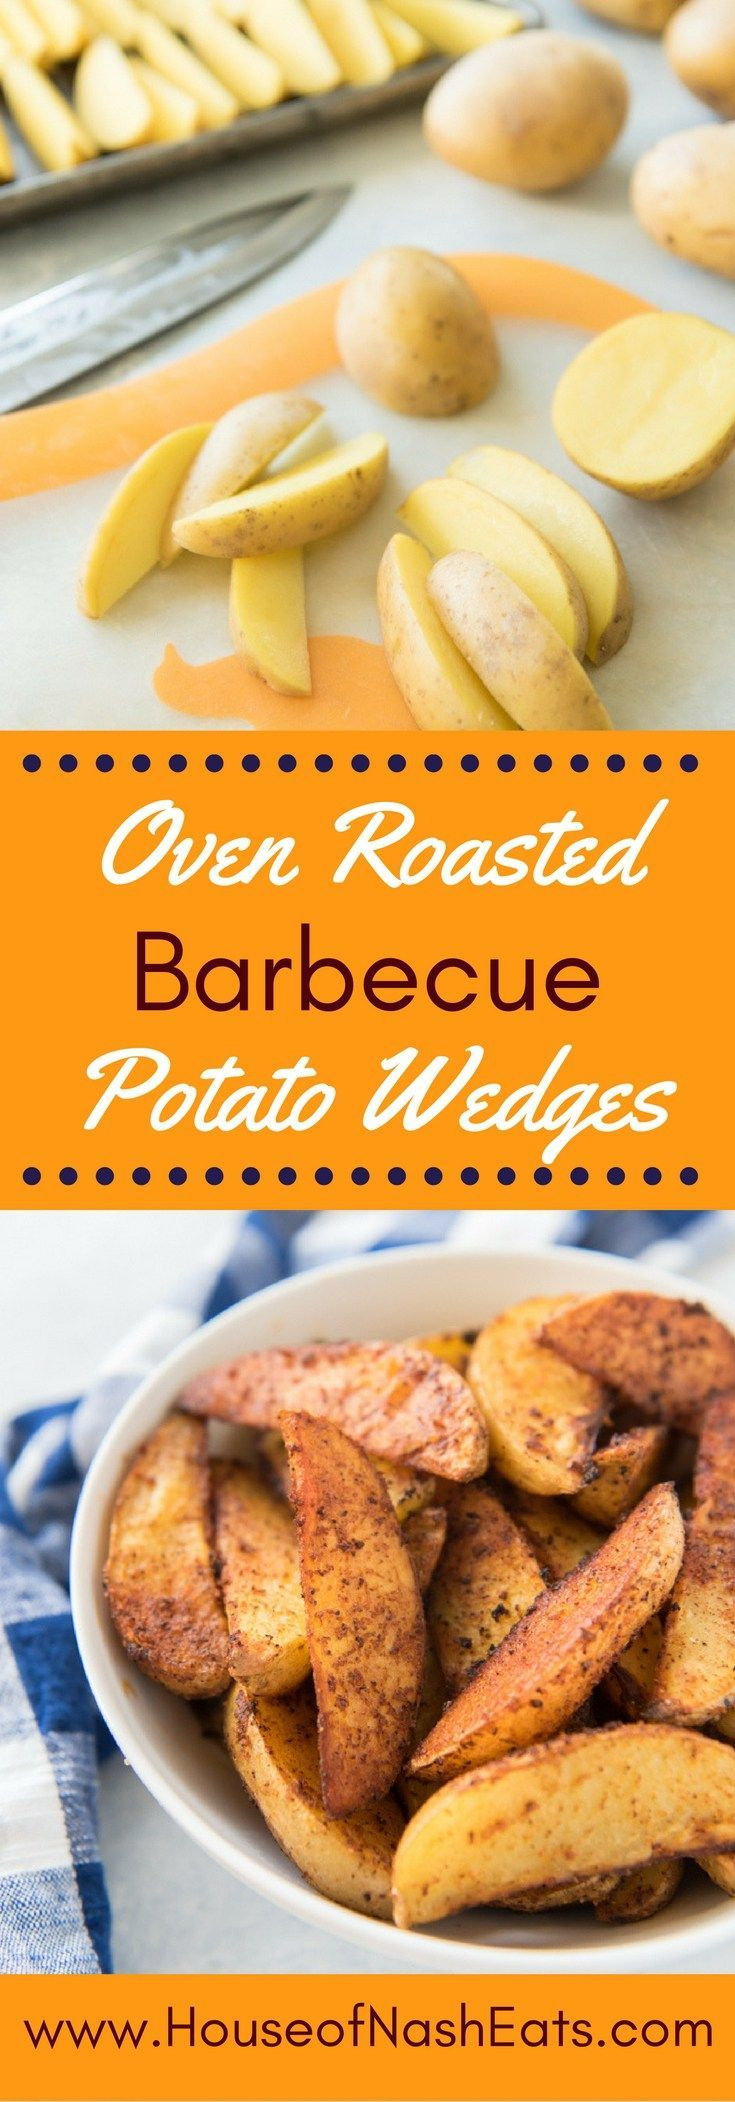 Big, bold barbecue flavors make these oven roasted barbecue potato wedges an incredibly delicious side to any meal.  They are seasoned perfectly with a crispy exterior and soft, almost buttery insides!  Like your favorite BBQ potato chips, they are hard t